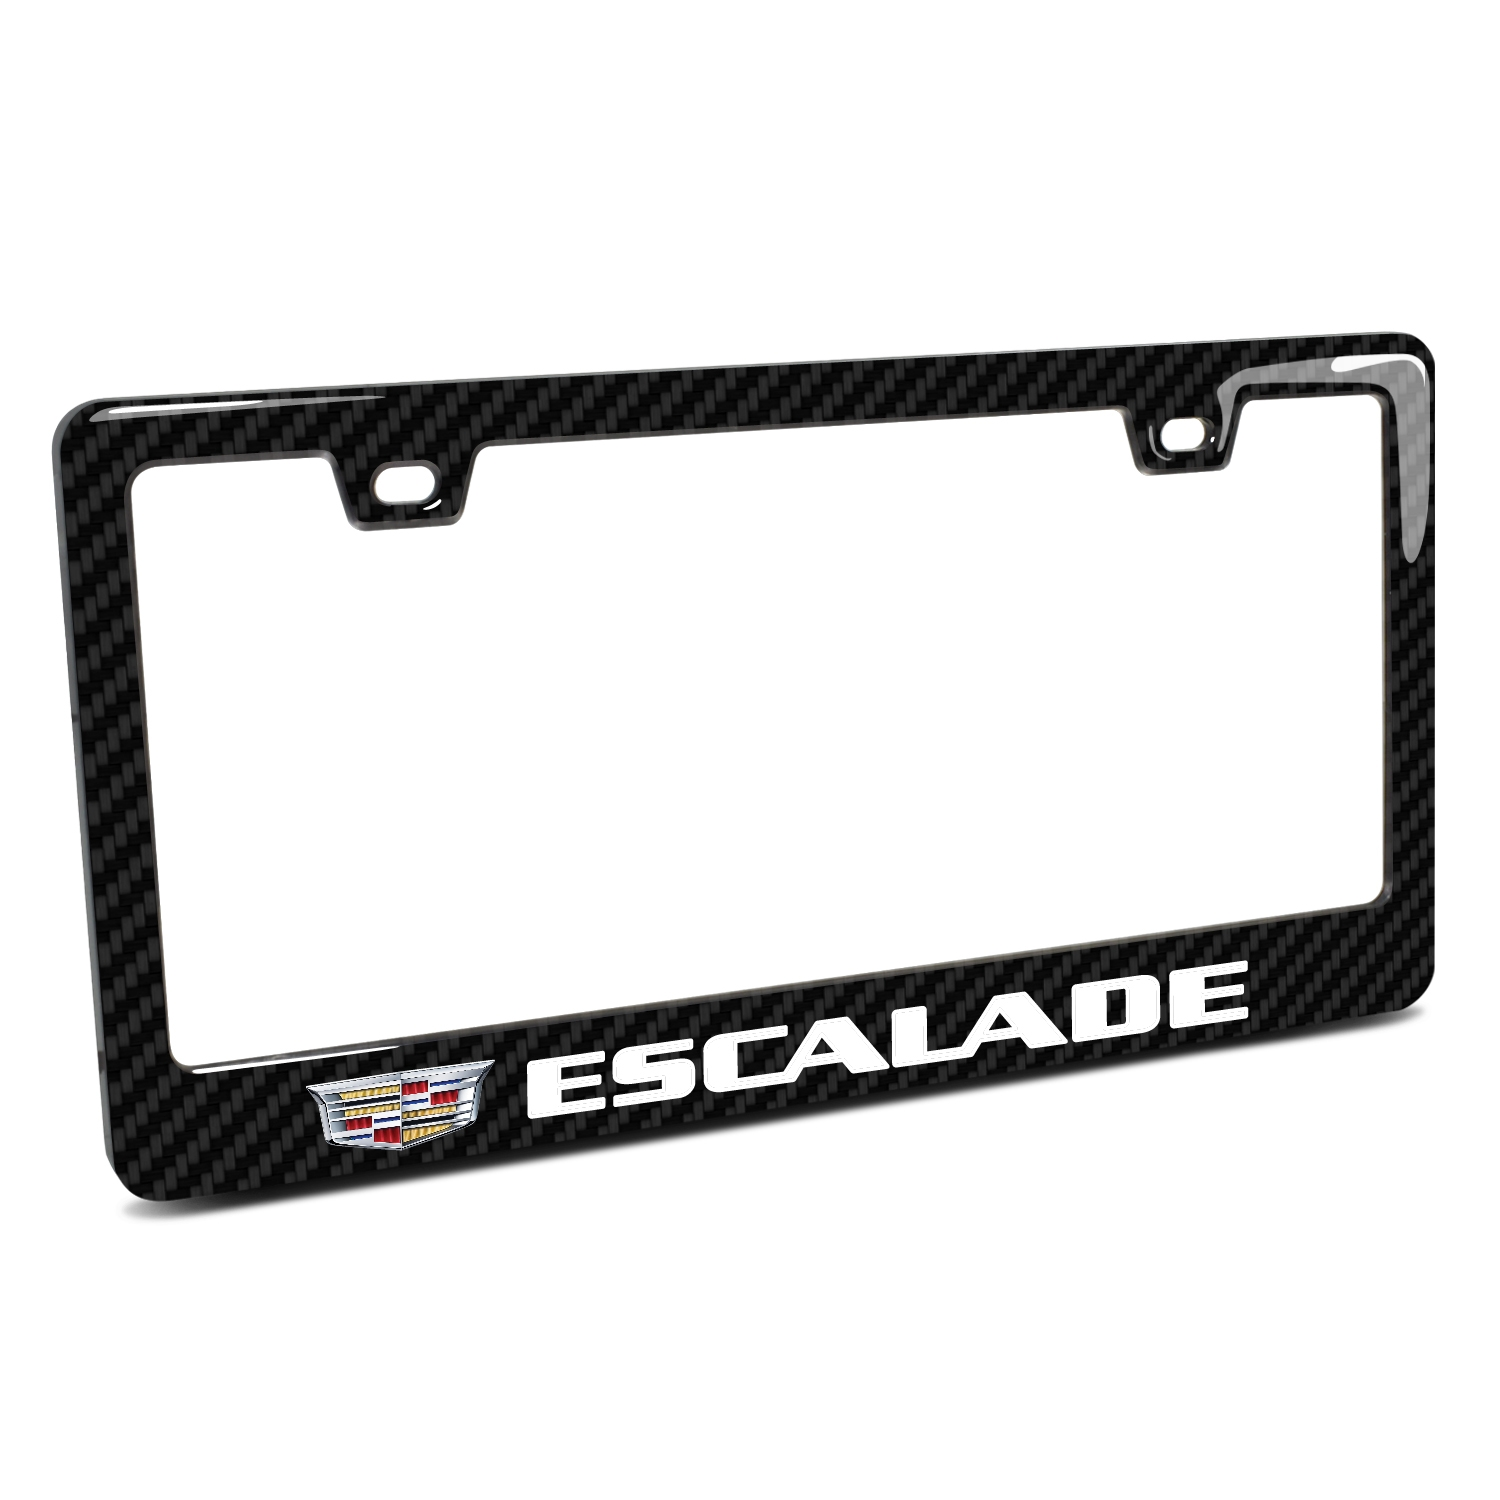 Cadillac Escalade Crest Logo in 3D on Real 3K Carbon Fiber Finish ABS Plastic License Plate Frame